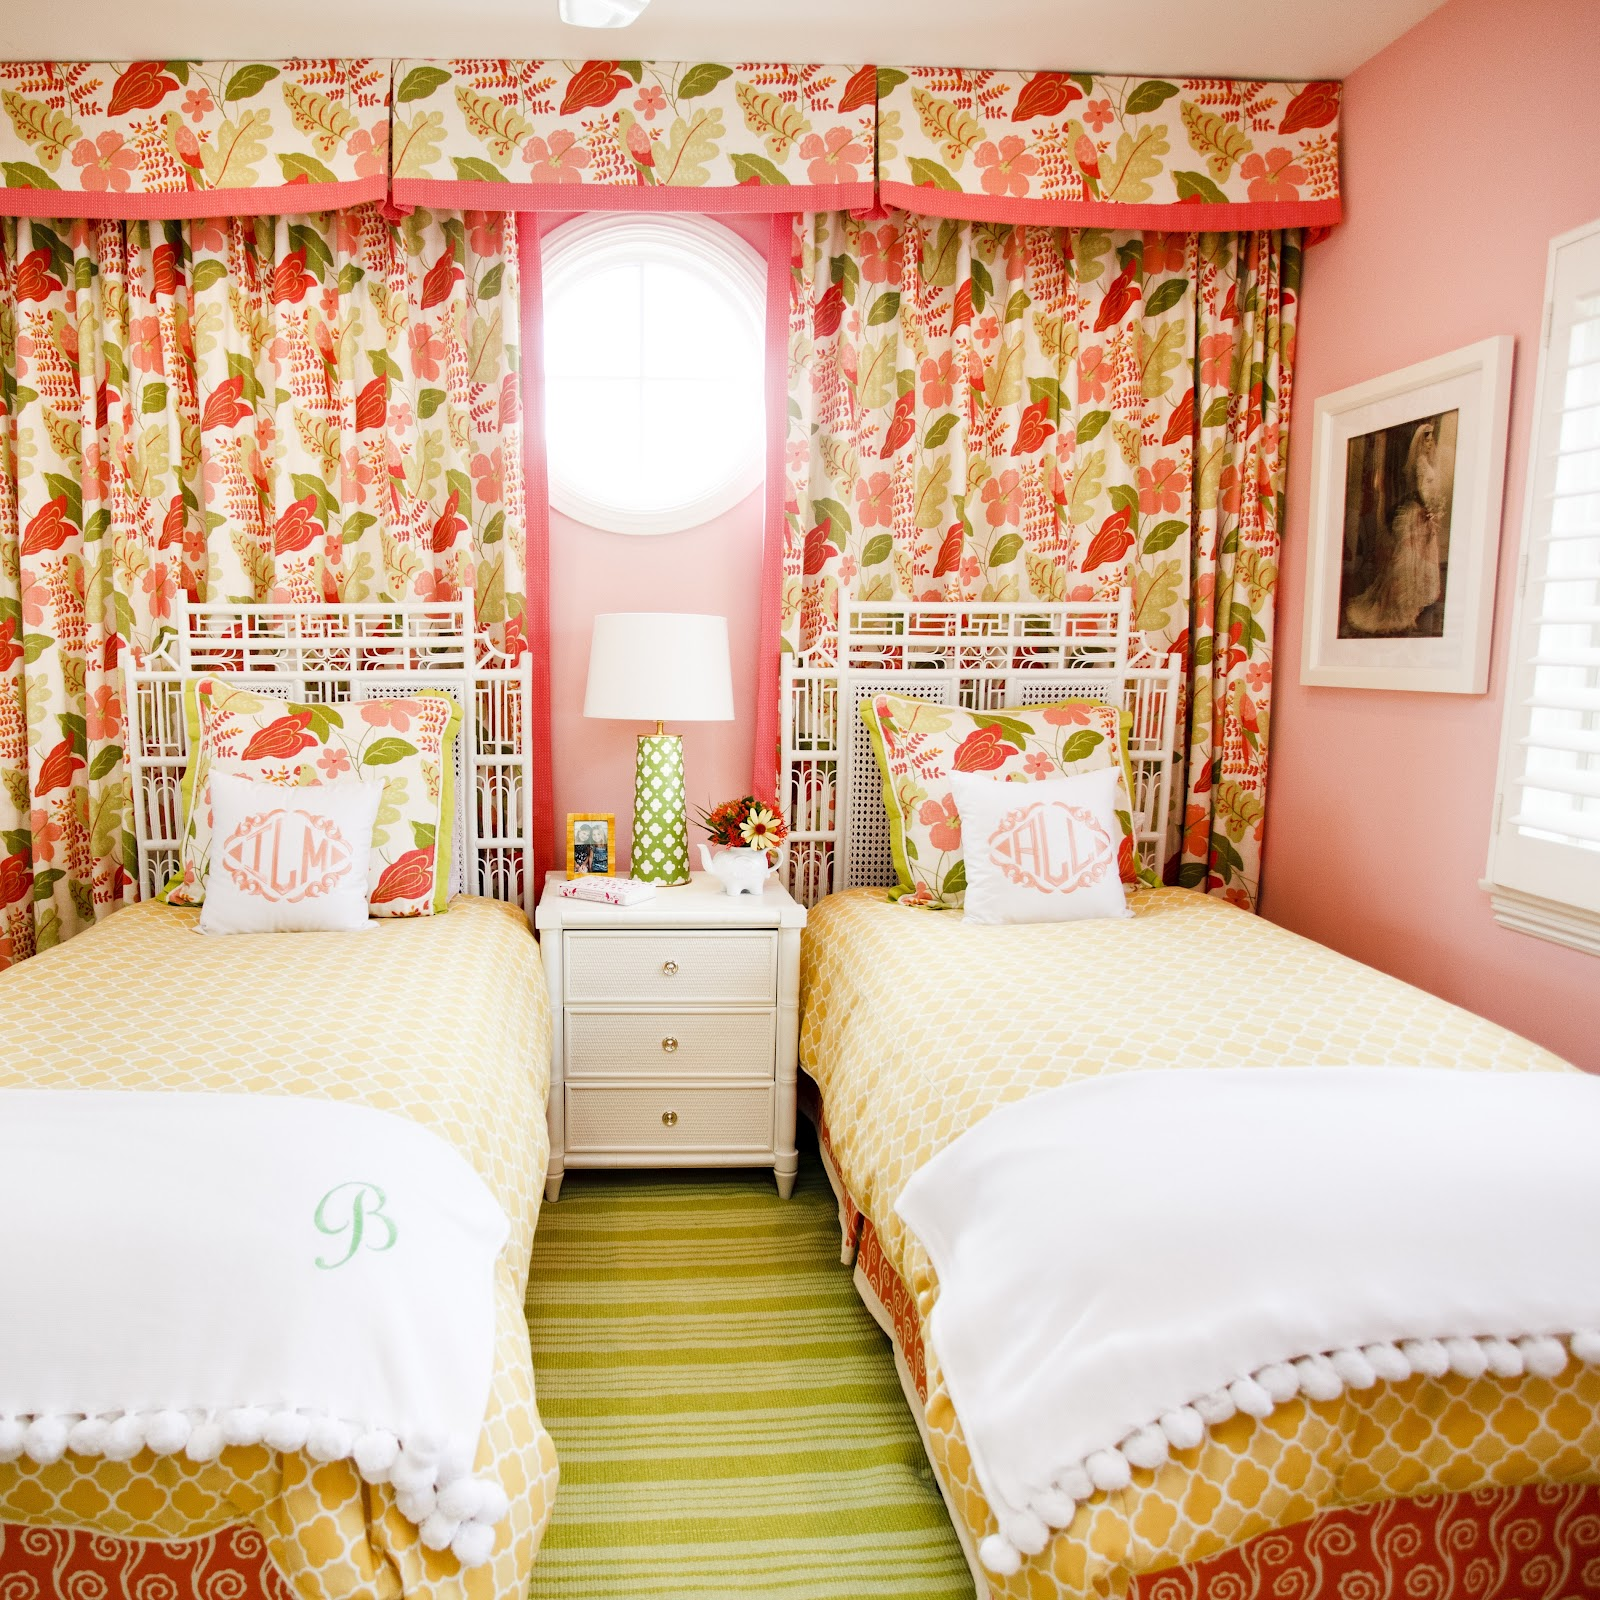 bedroom ideas for teenage girls 2012. Palm Beach Inspired Shared Room By Andrika King Design Bedroom Ideas For Teenage Girls 2012